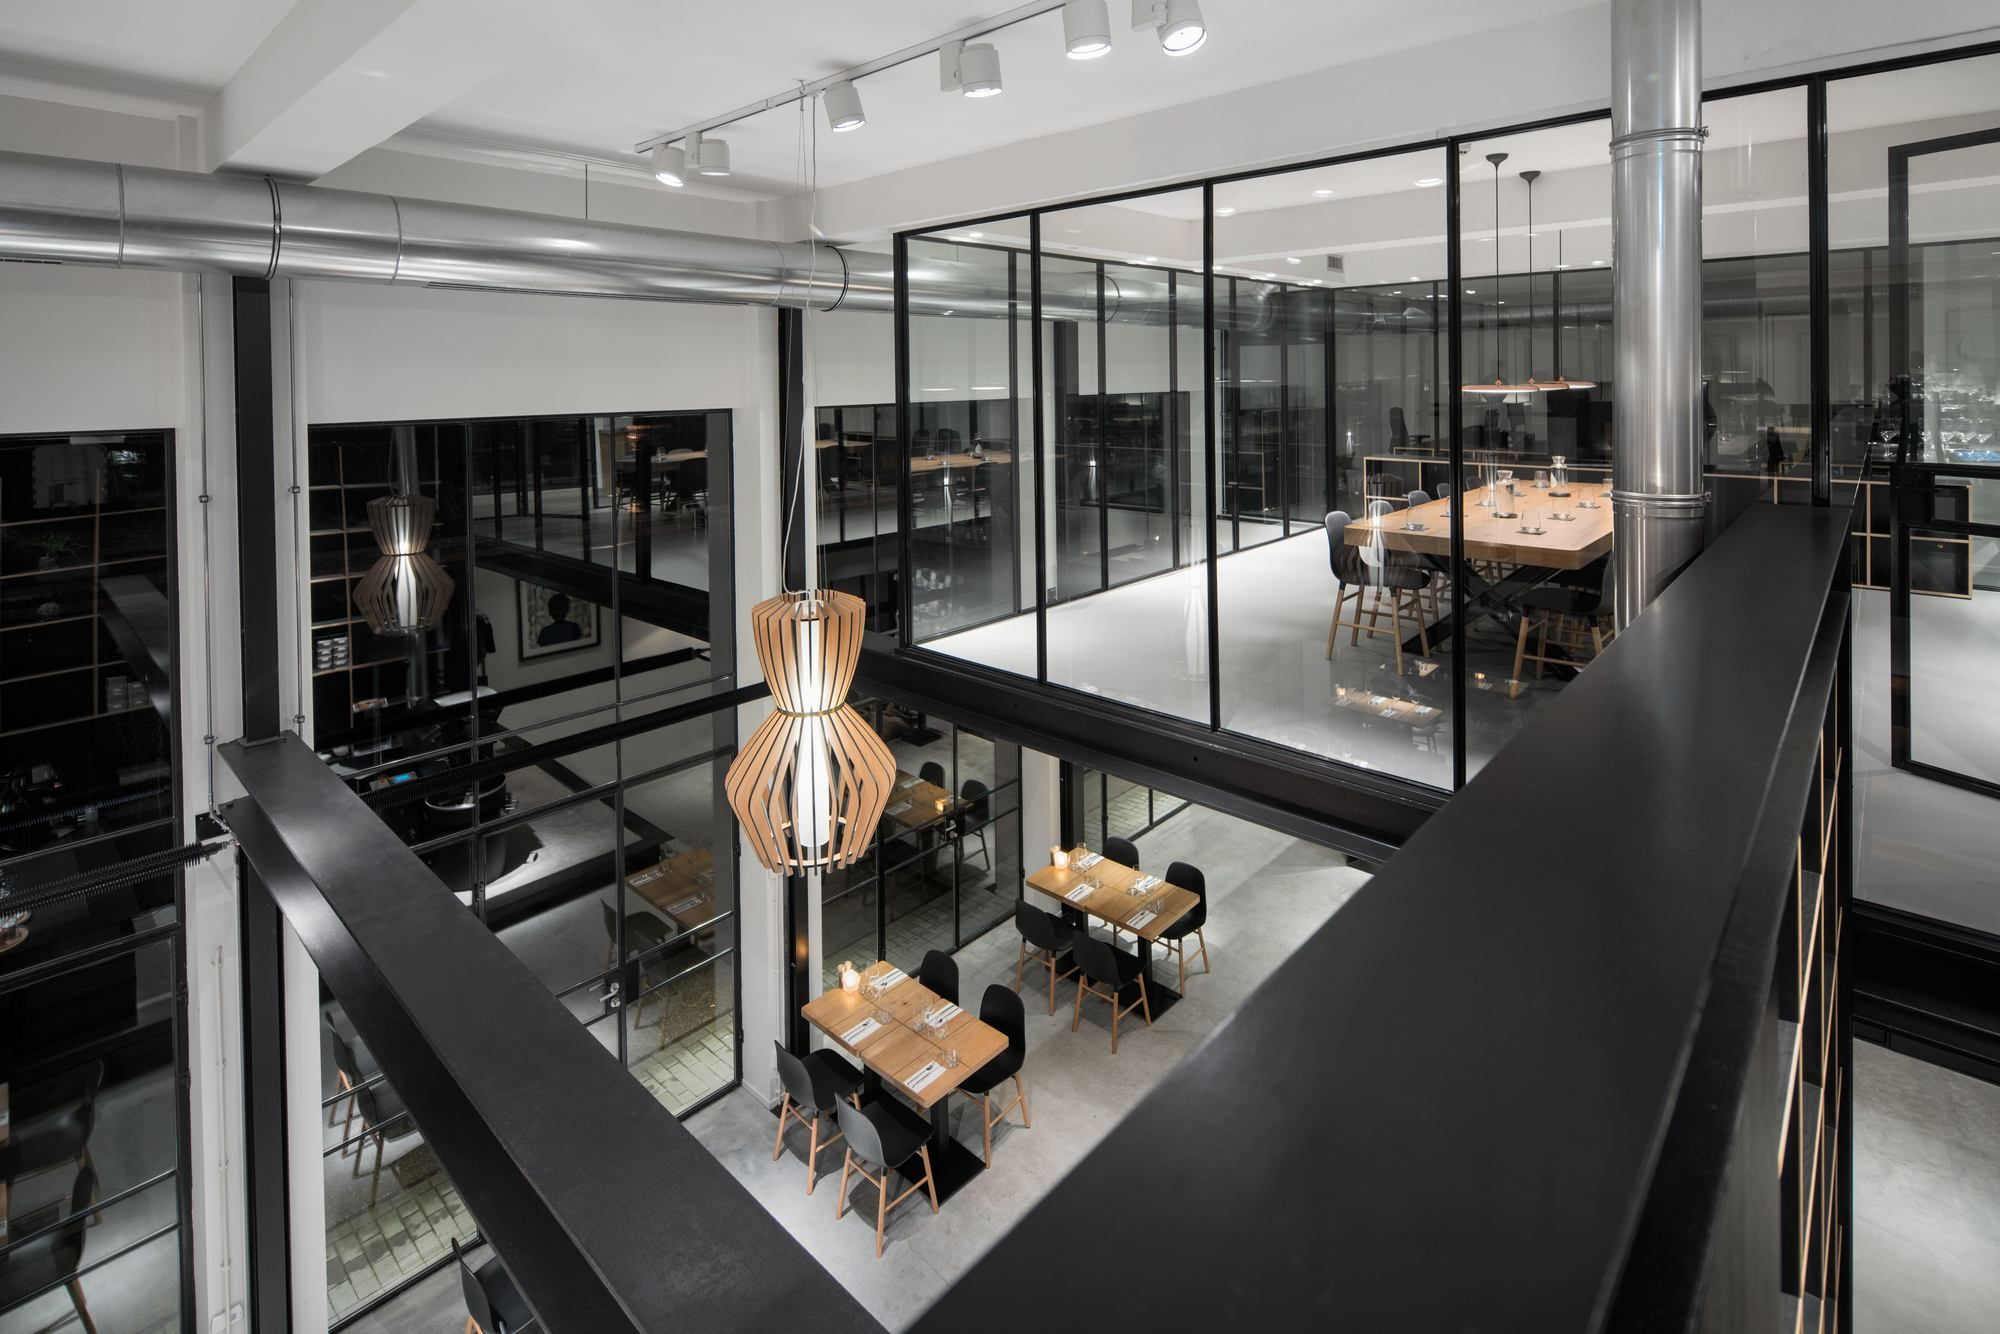 Black-and-white-interior-of-the-industrial-cafe-in-The-Hague